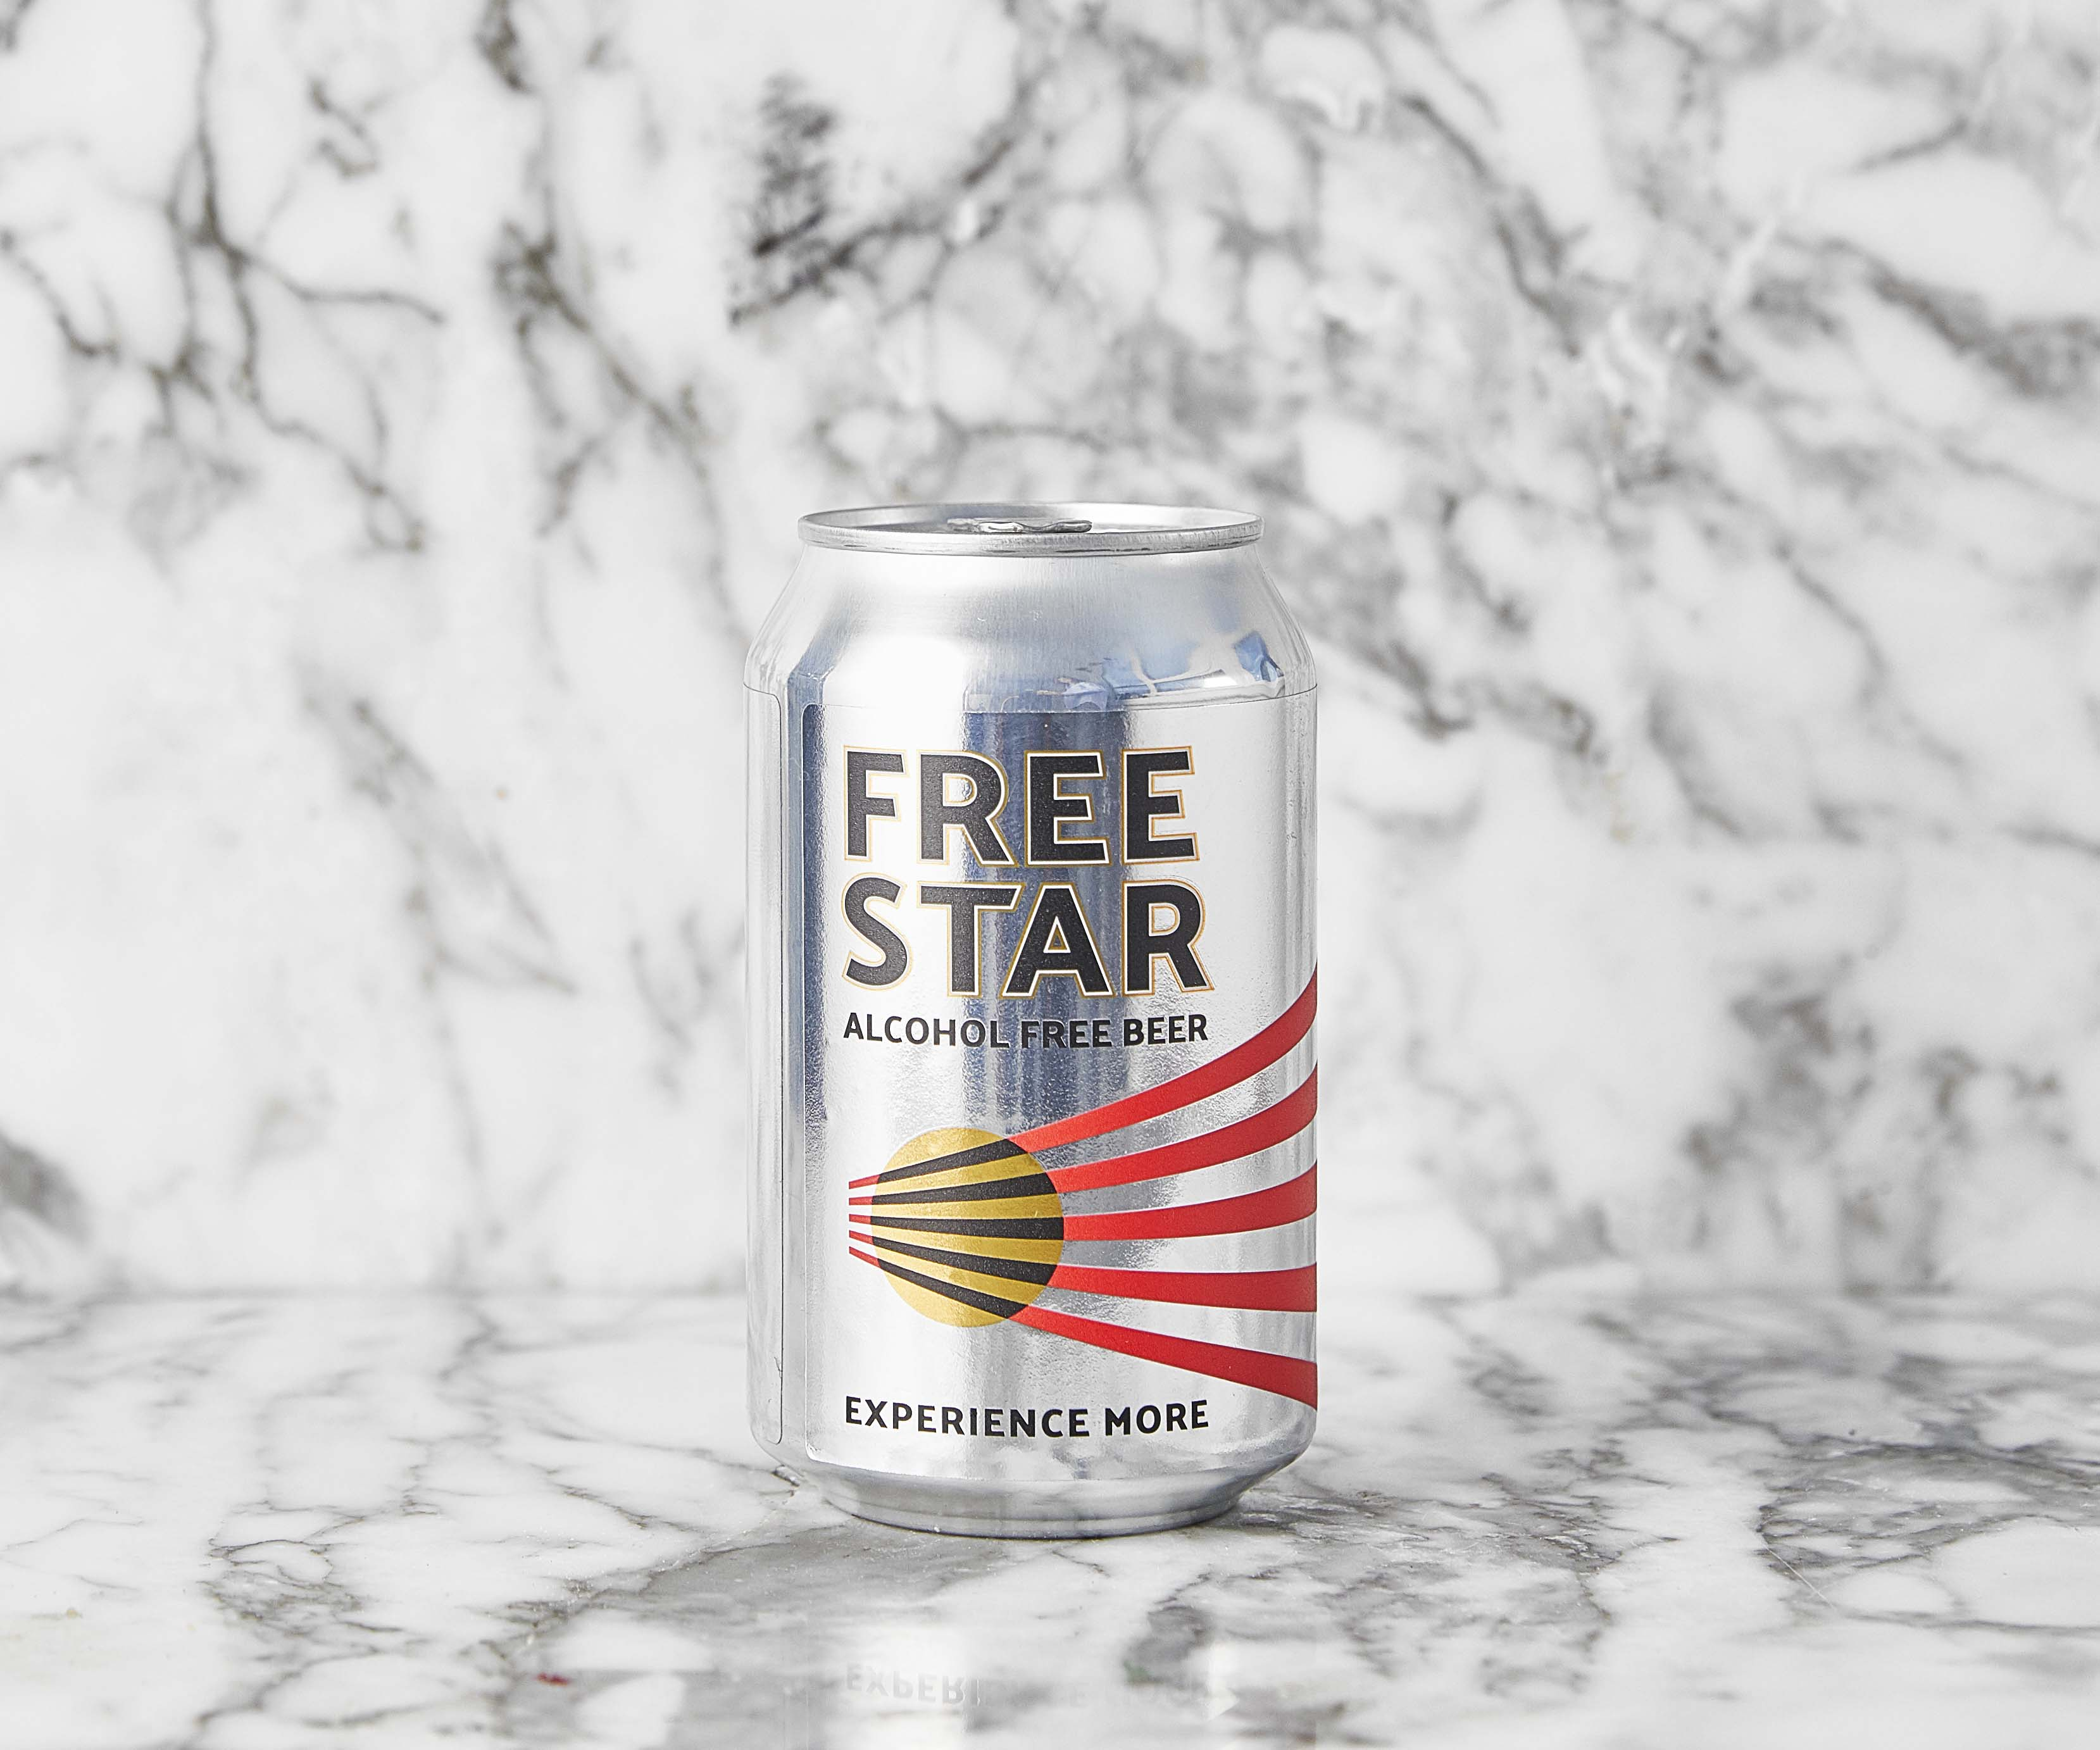 Freestar alcohol-free beer